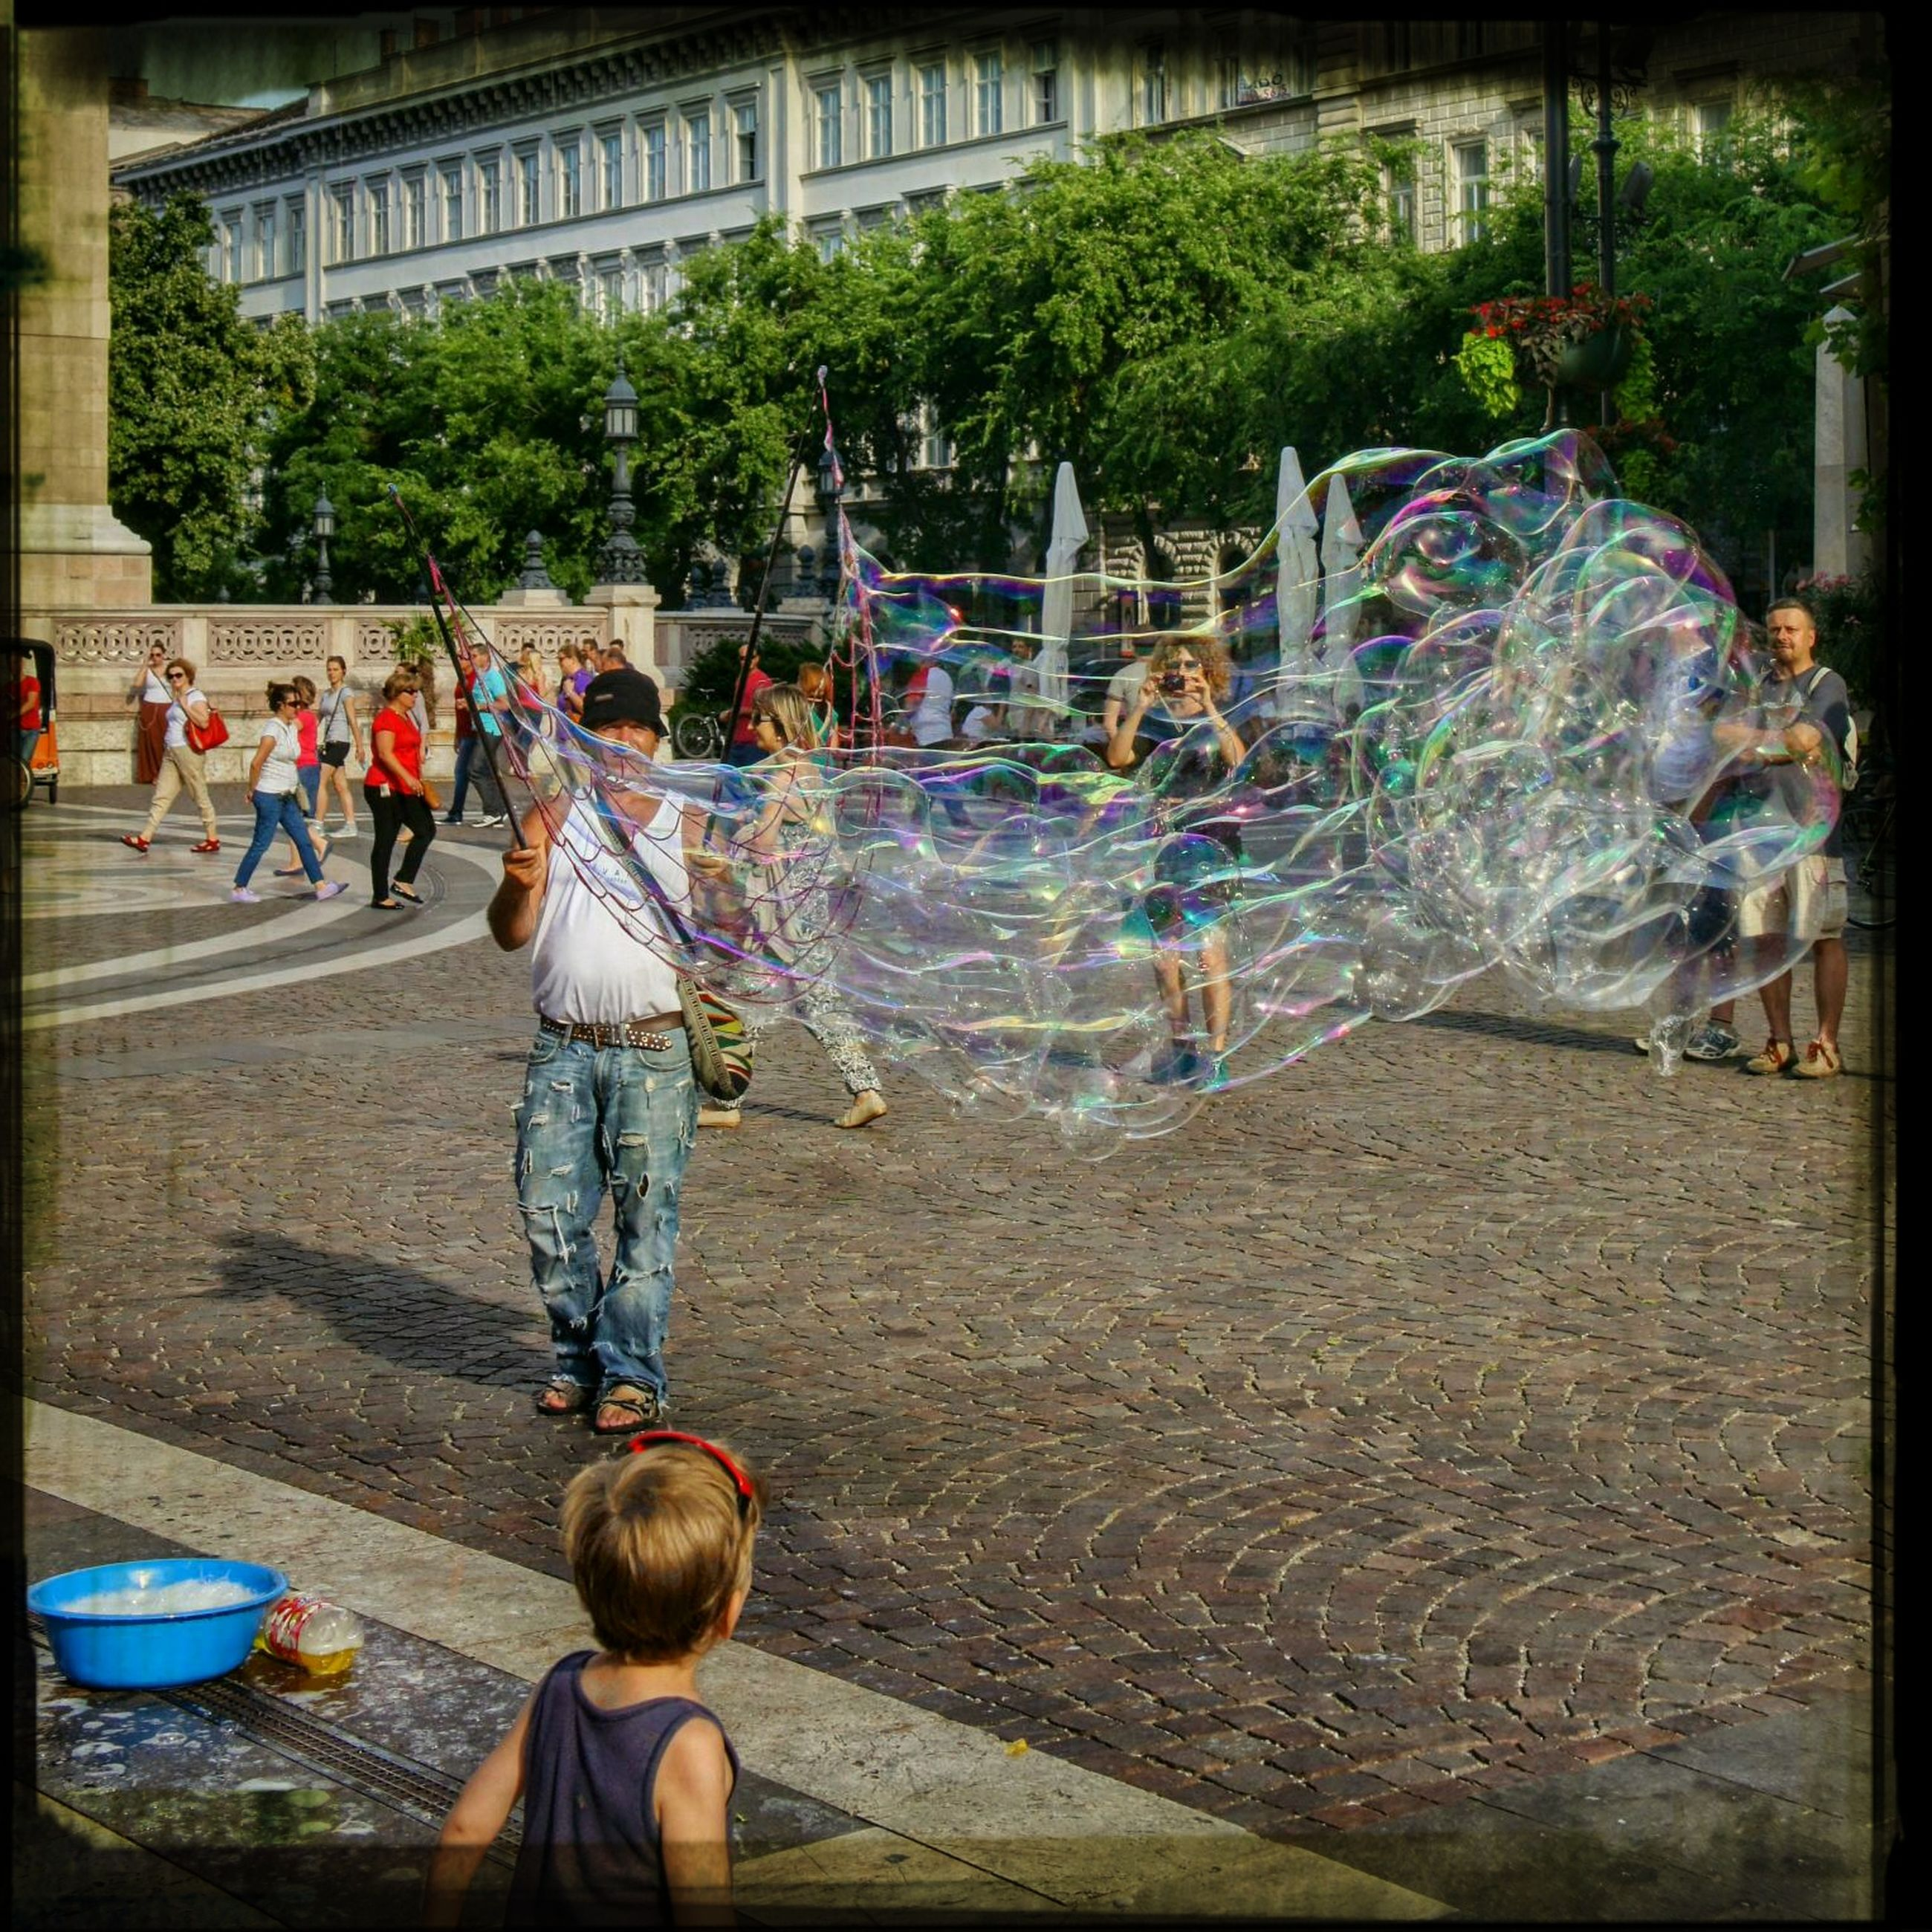 water, incidental people, childhood, lifestyles, leisure activity, fountain, outdoors, auto post production filter, park - man made space, day, transfer print, men, person, large group of people, street, girls, fun, sunlight, enjoyment